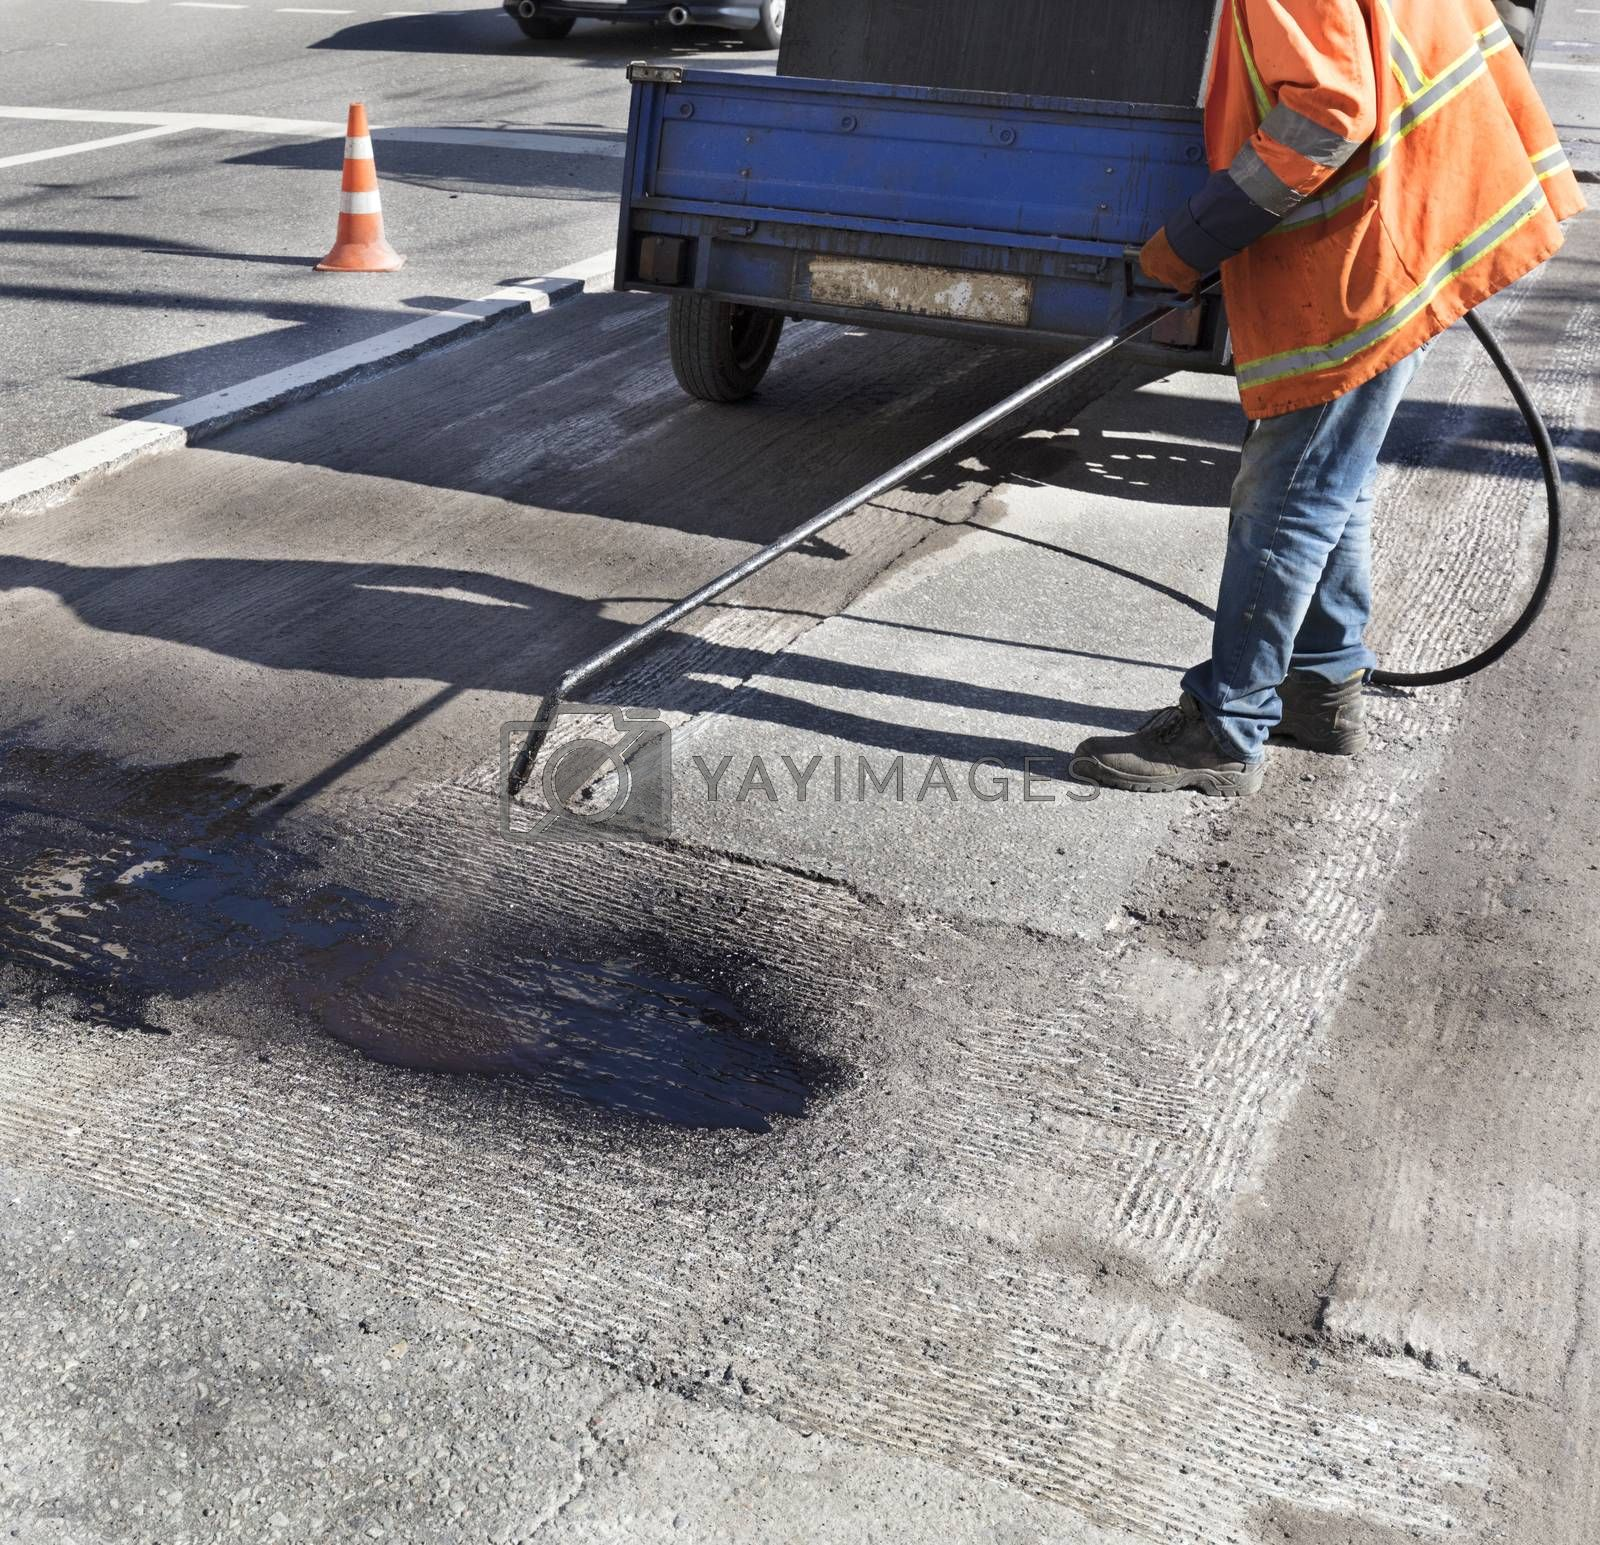 The road maintenance worker sprays the bitumen mixture onto the cleaned area for better adhesion to the new asphalt